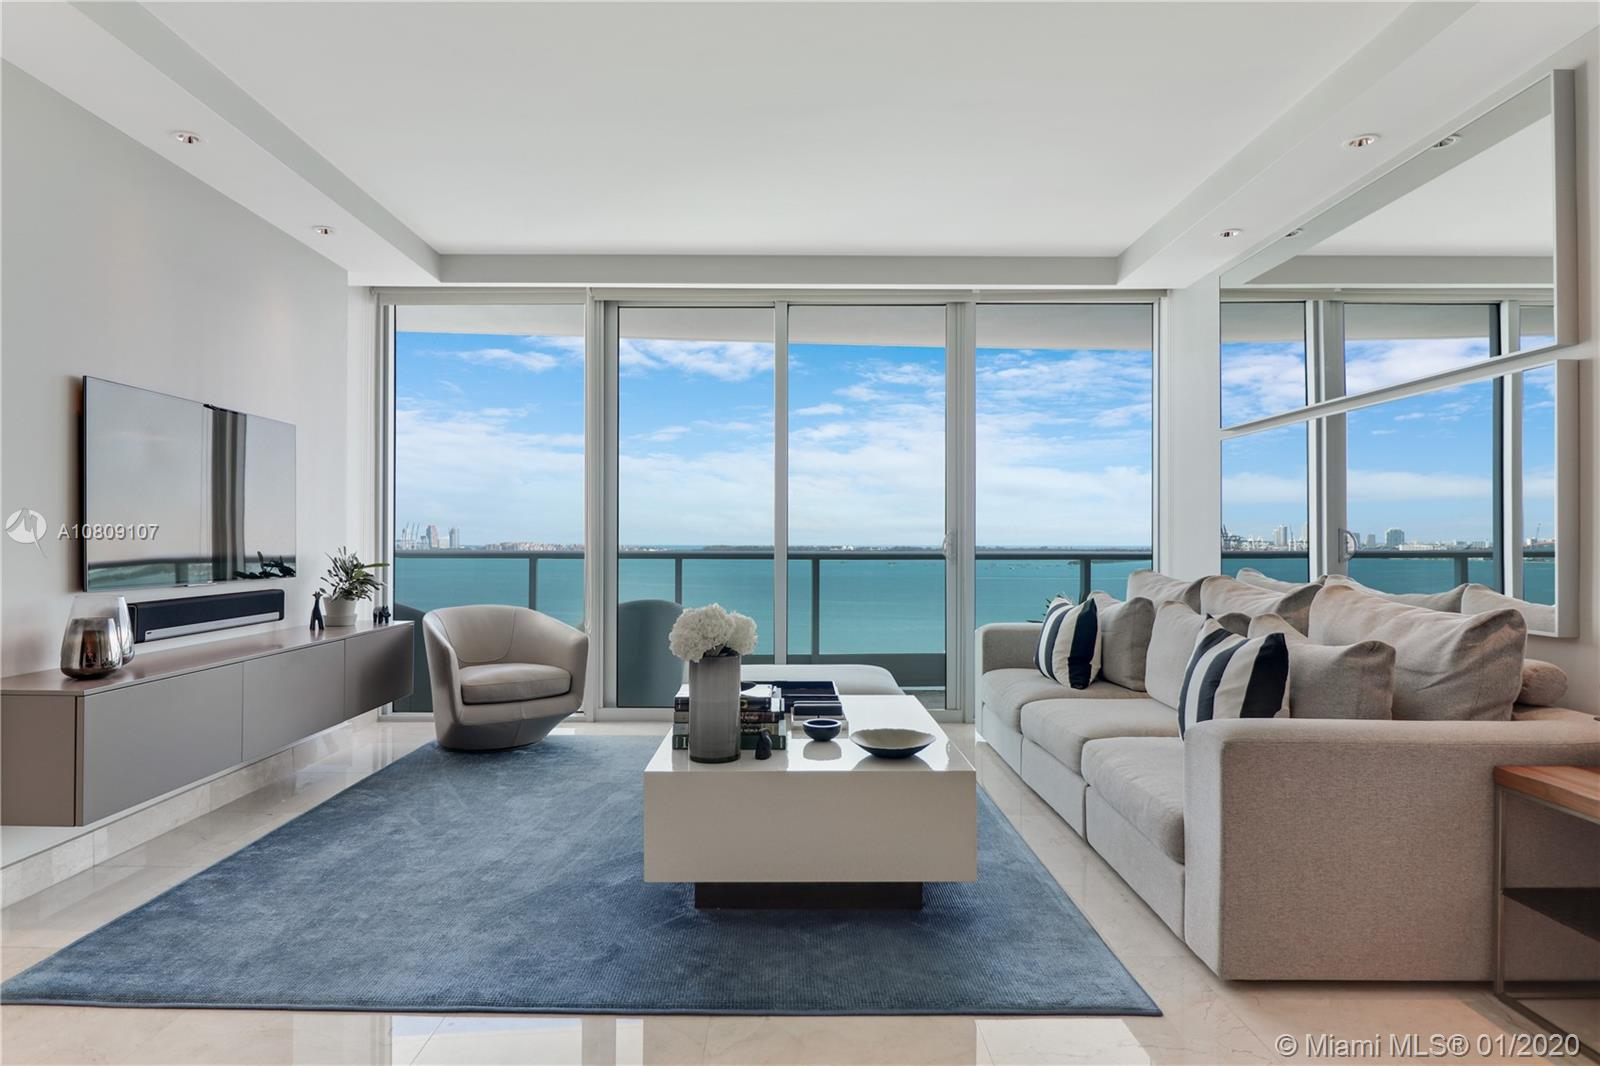 1331  Brickell Bay Dr #1603 For Sale A10809107, FL